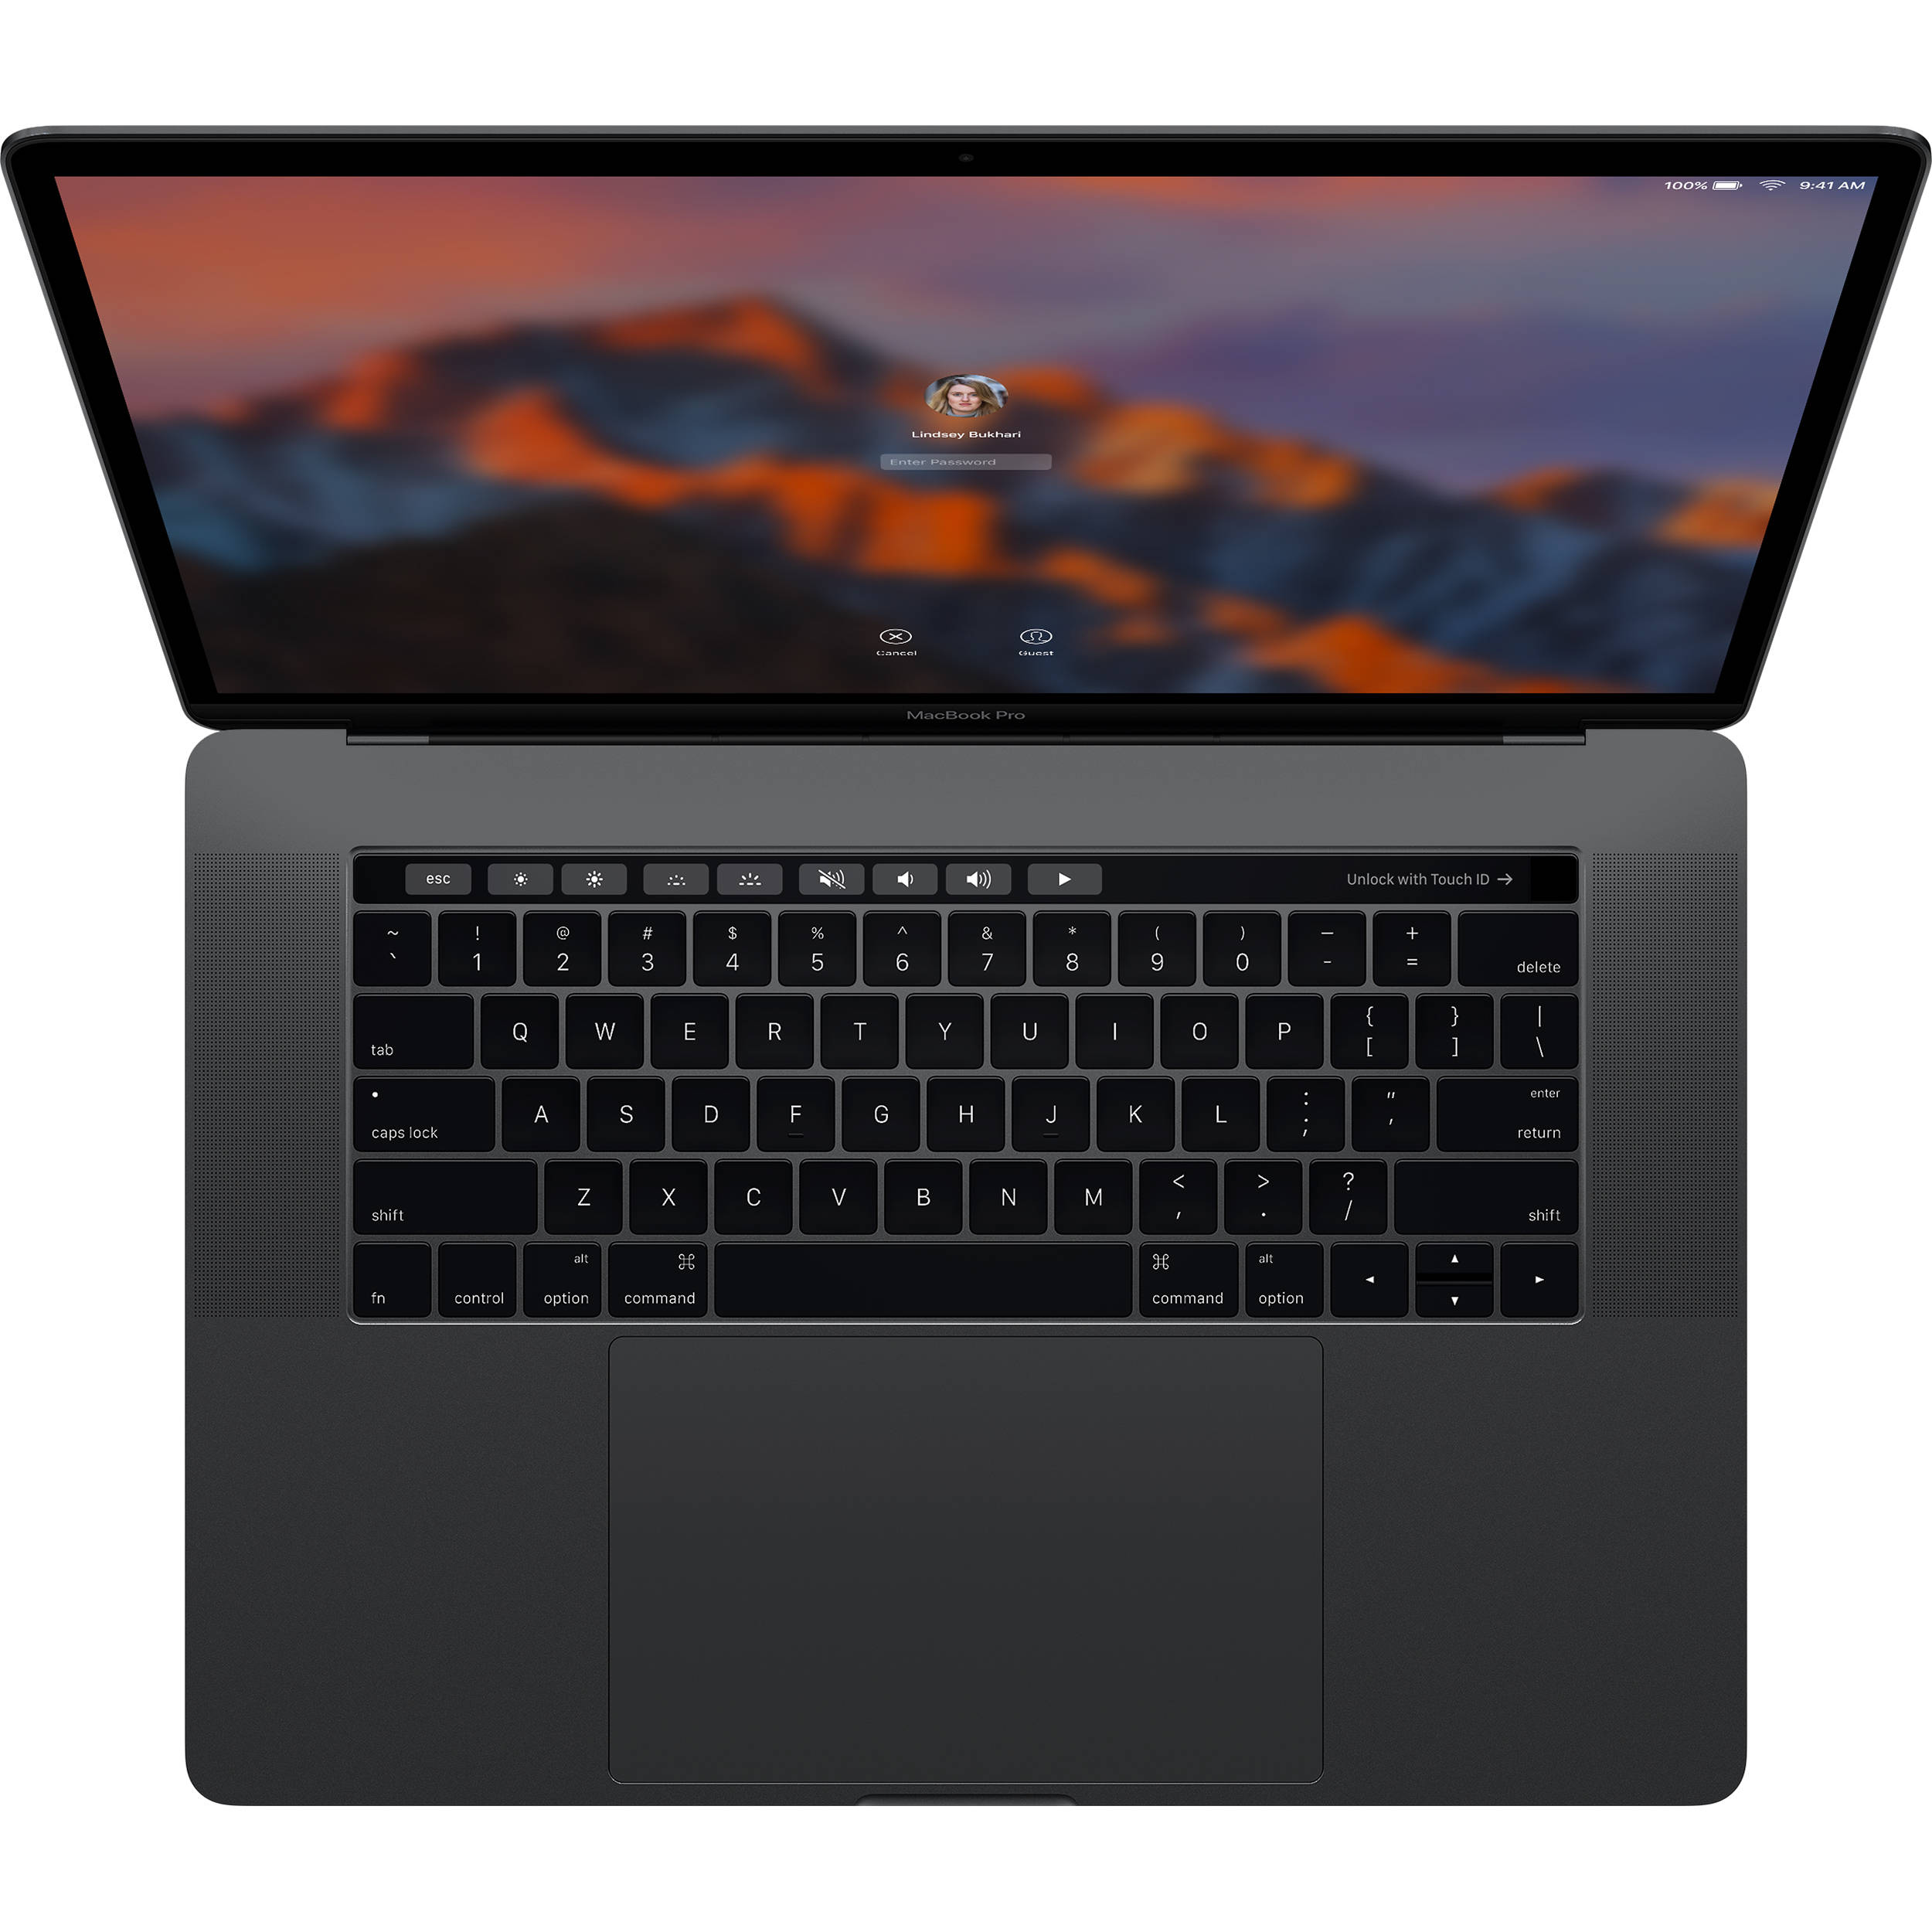 MPTR2SL/A MacBook Pro 15'' i7 2.8GHz/16G/256/TB/SK/Sp Gray